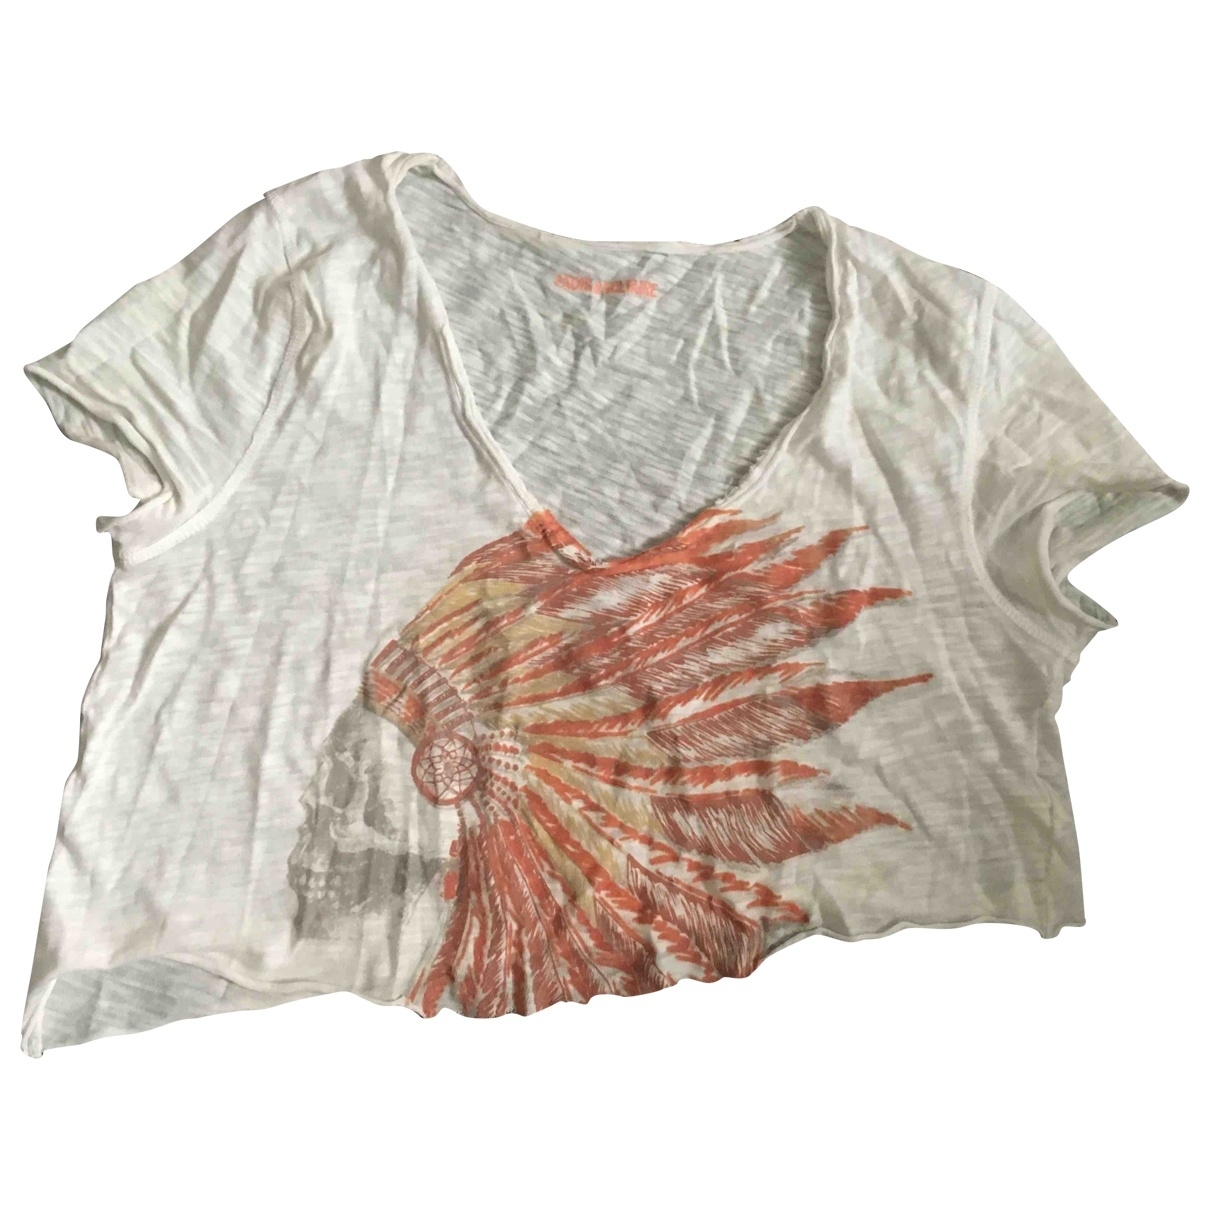 Zadig & Voltaire \N White Cotton  top for Women S International